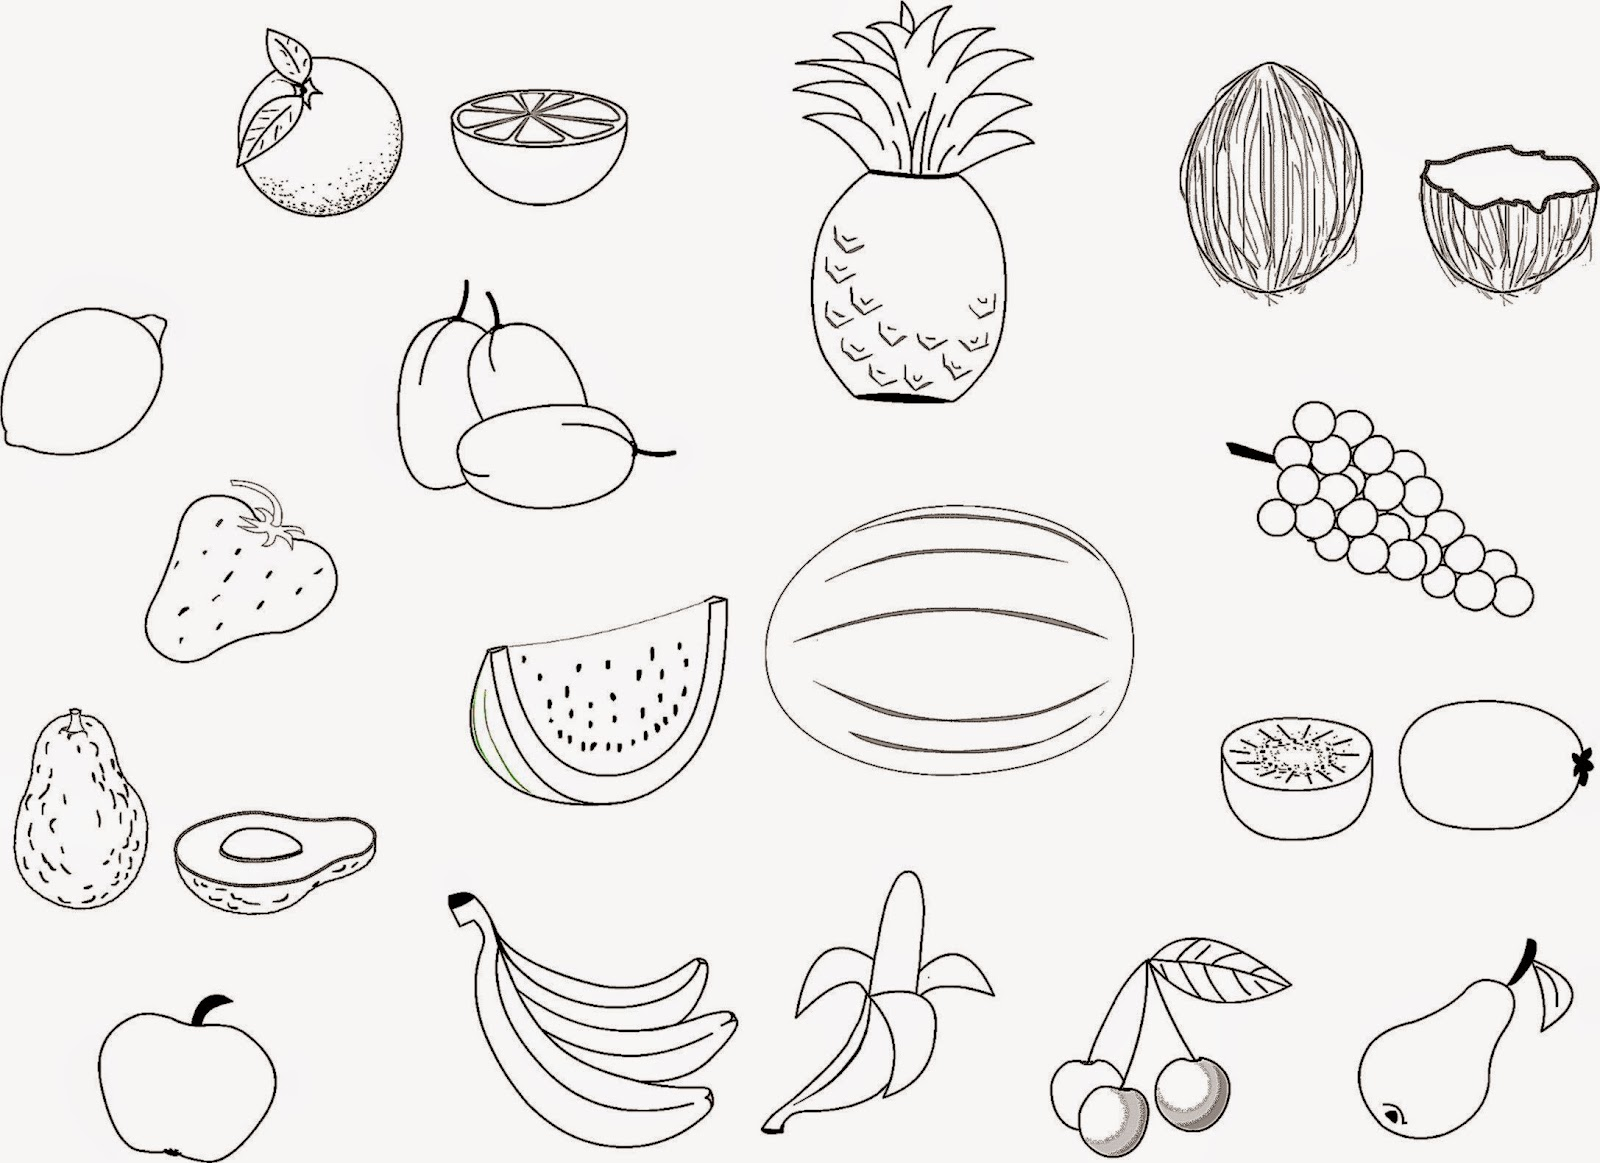 Coloring pictures of fruit free coloring pictures for Printable fruit coloring pages